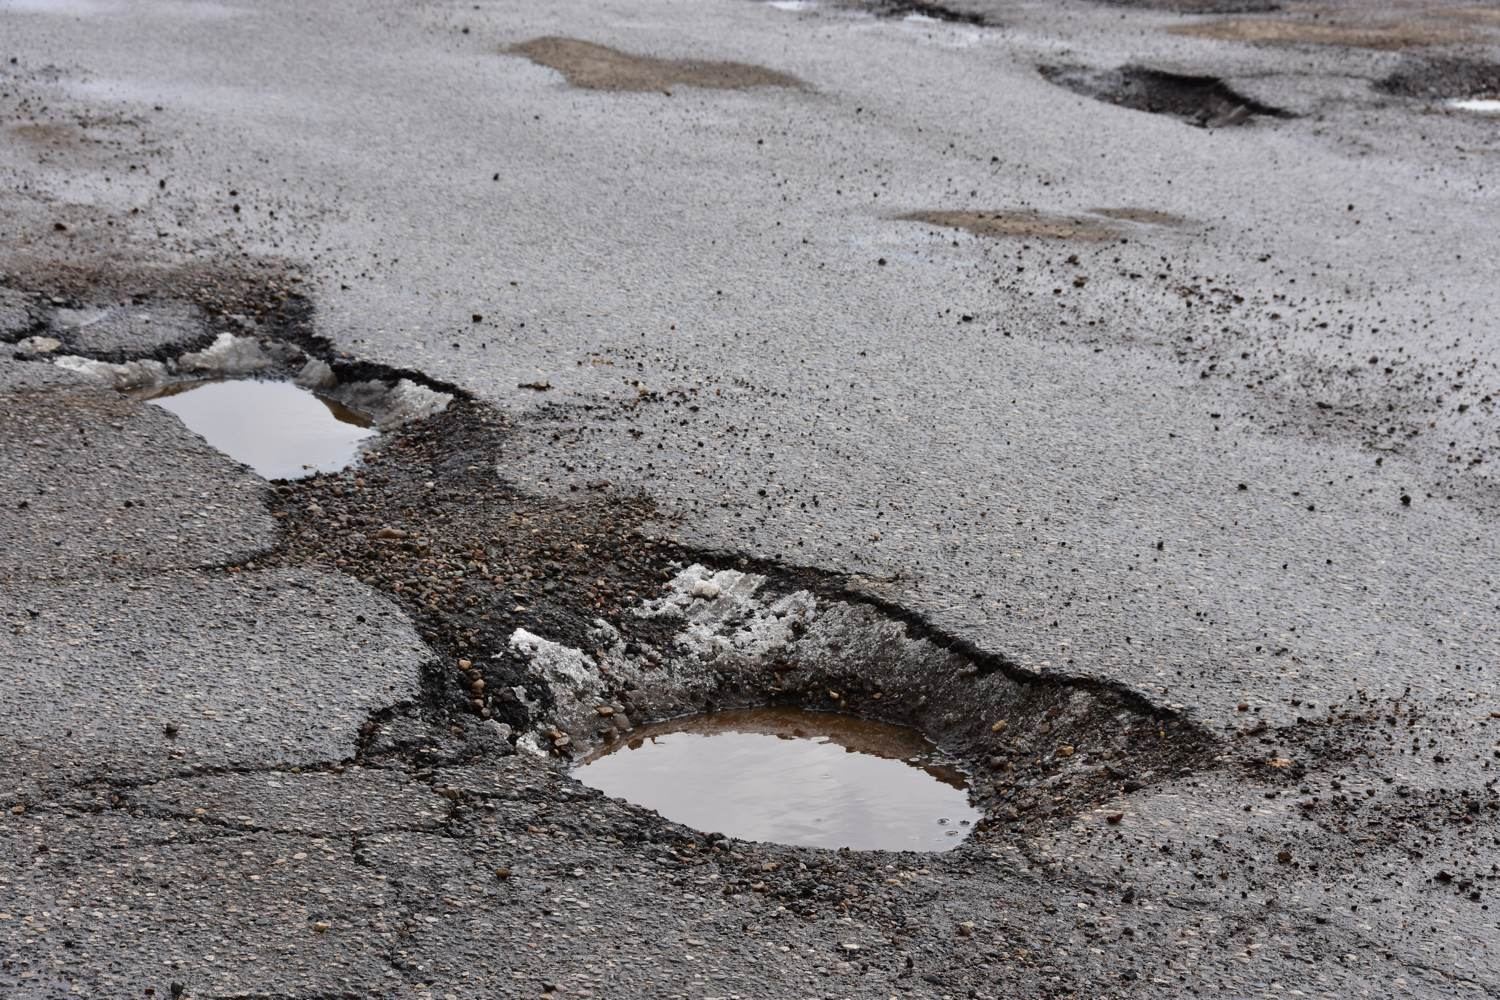 Large potholes with small puddles in them